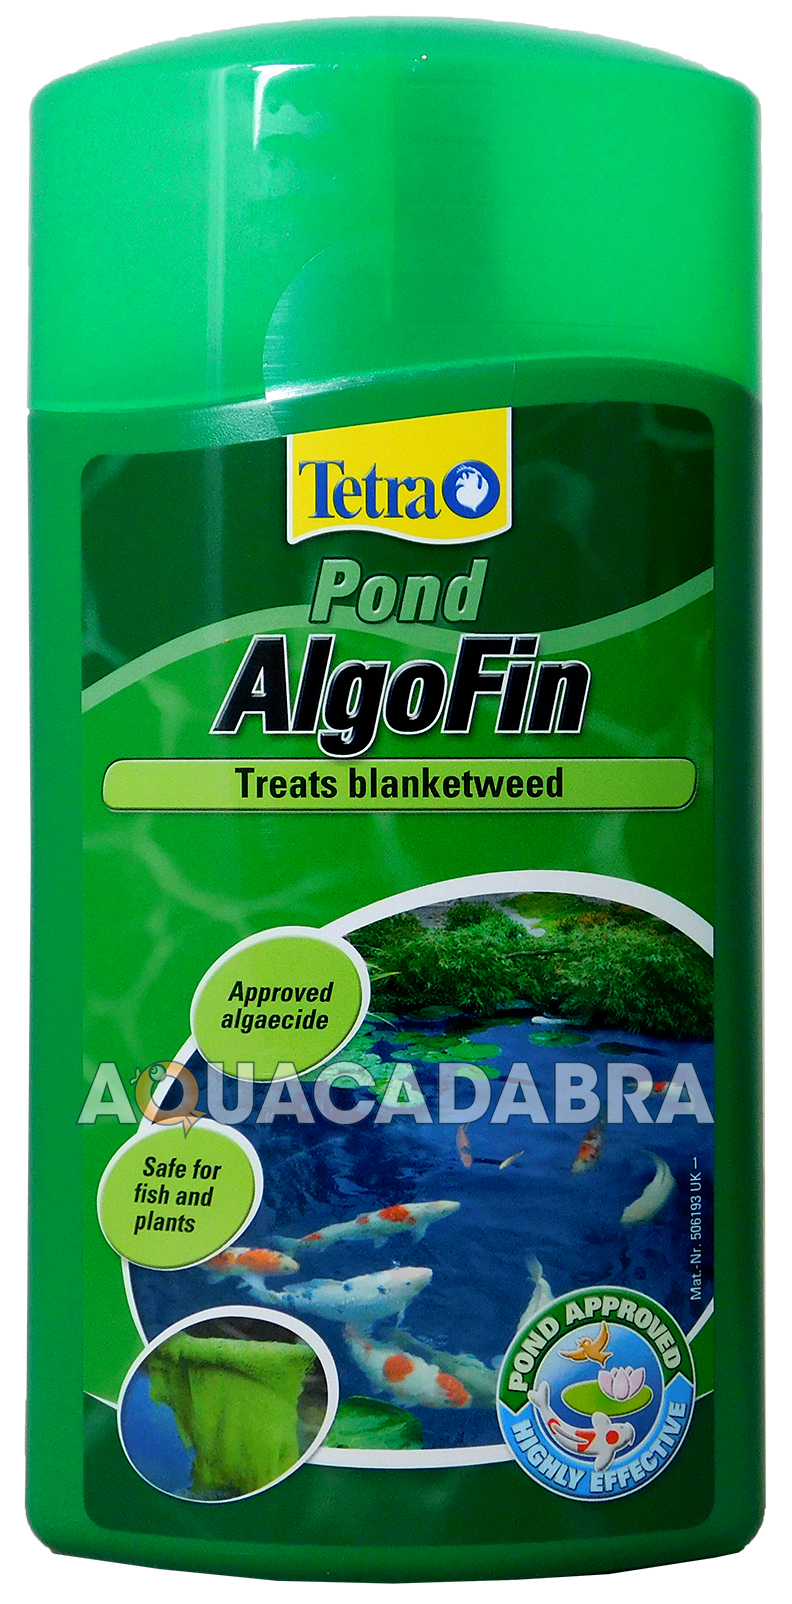 Tetra pond algofin 1l blanketweed algae treatment for Koi pond algae control